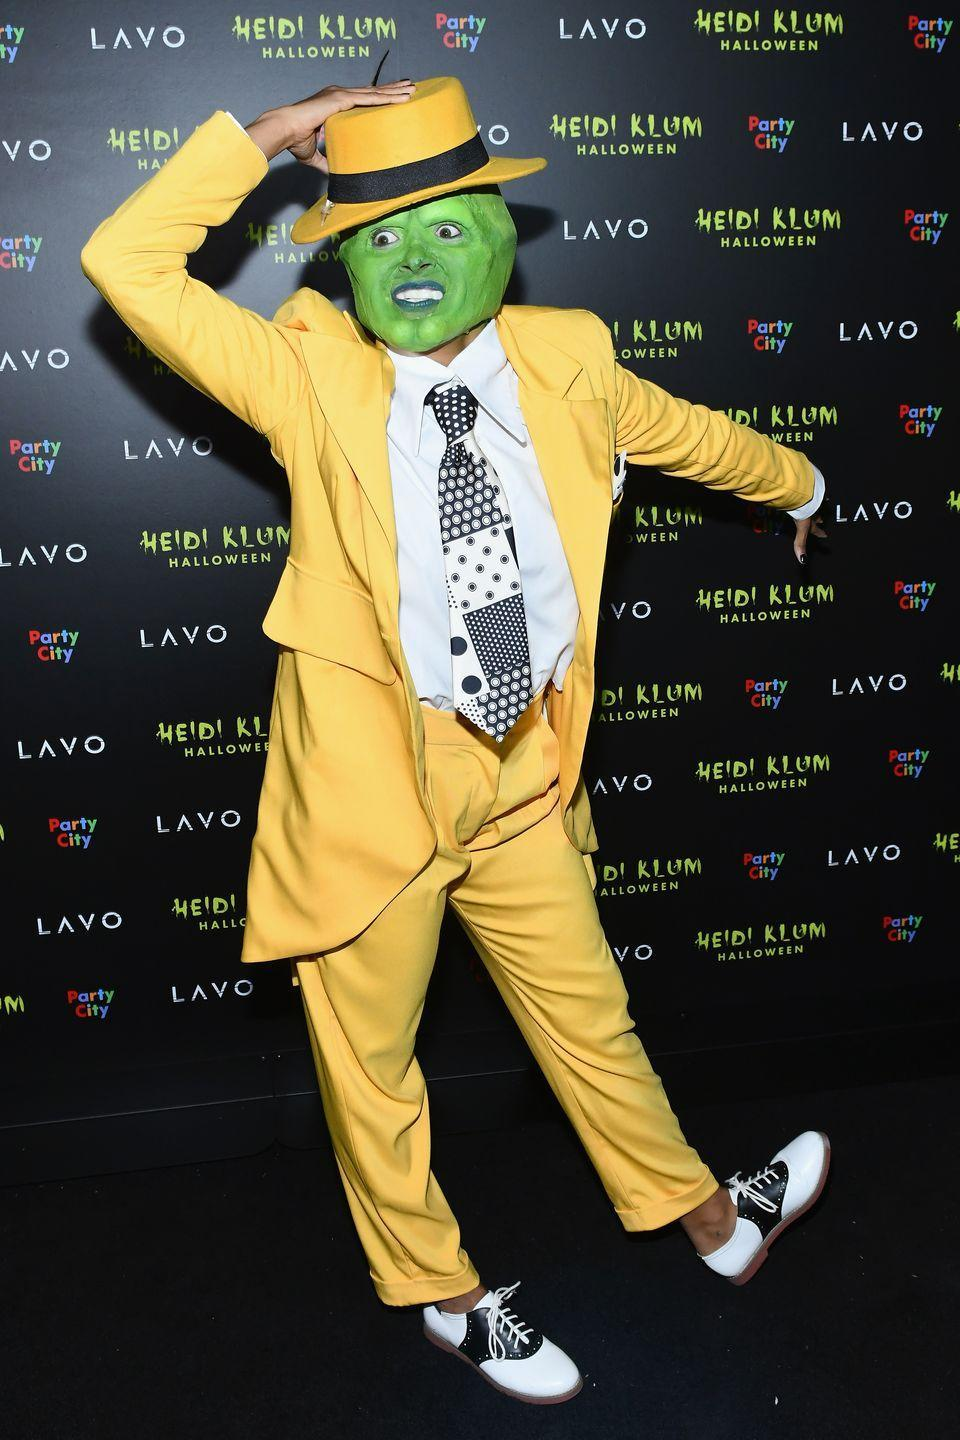 <p>There's no way you could ever guess that was the <em>Vampire Diaries </em>star. But it really is! The actress went all out at Heidi Klum's Halloween Party when she arrived as Jim Carrey's infamous character from <em>The Mask</em>. </p>